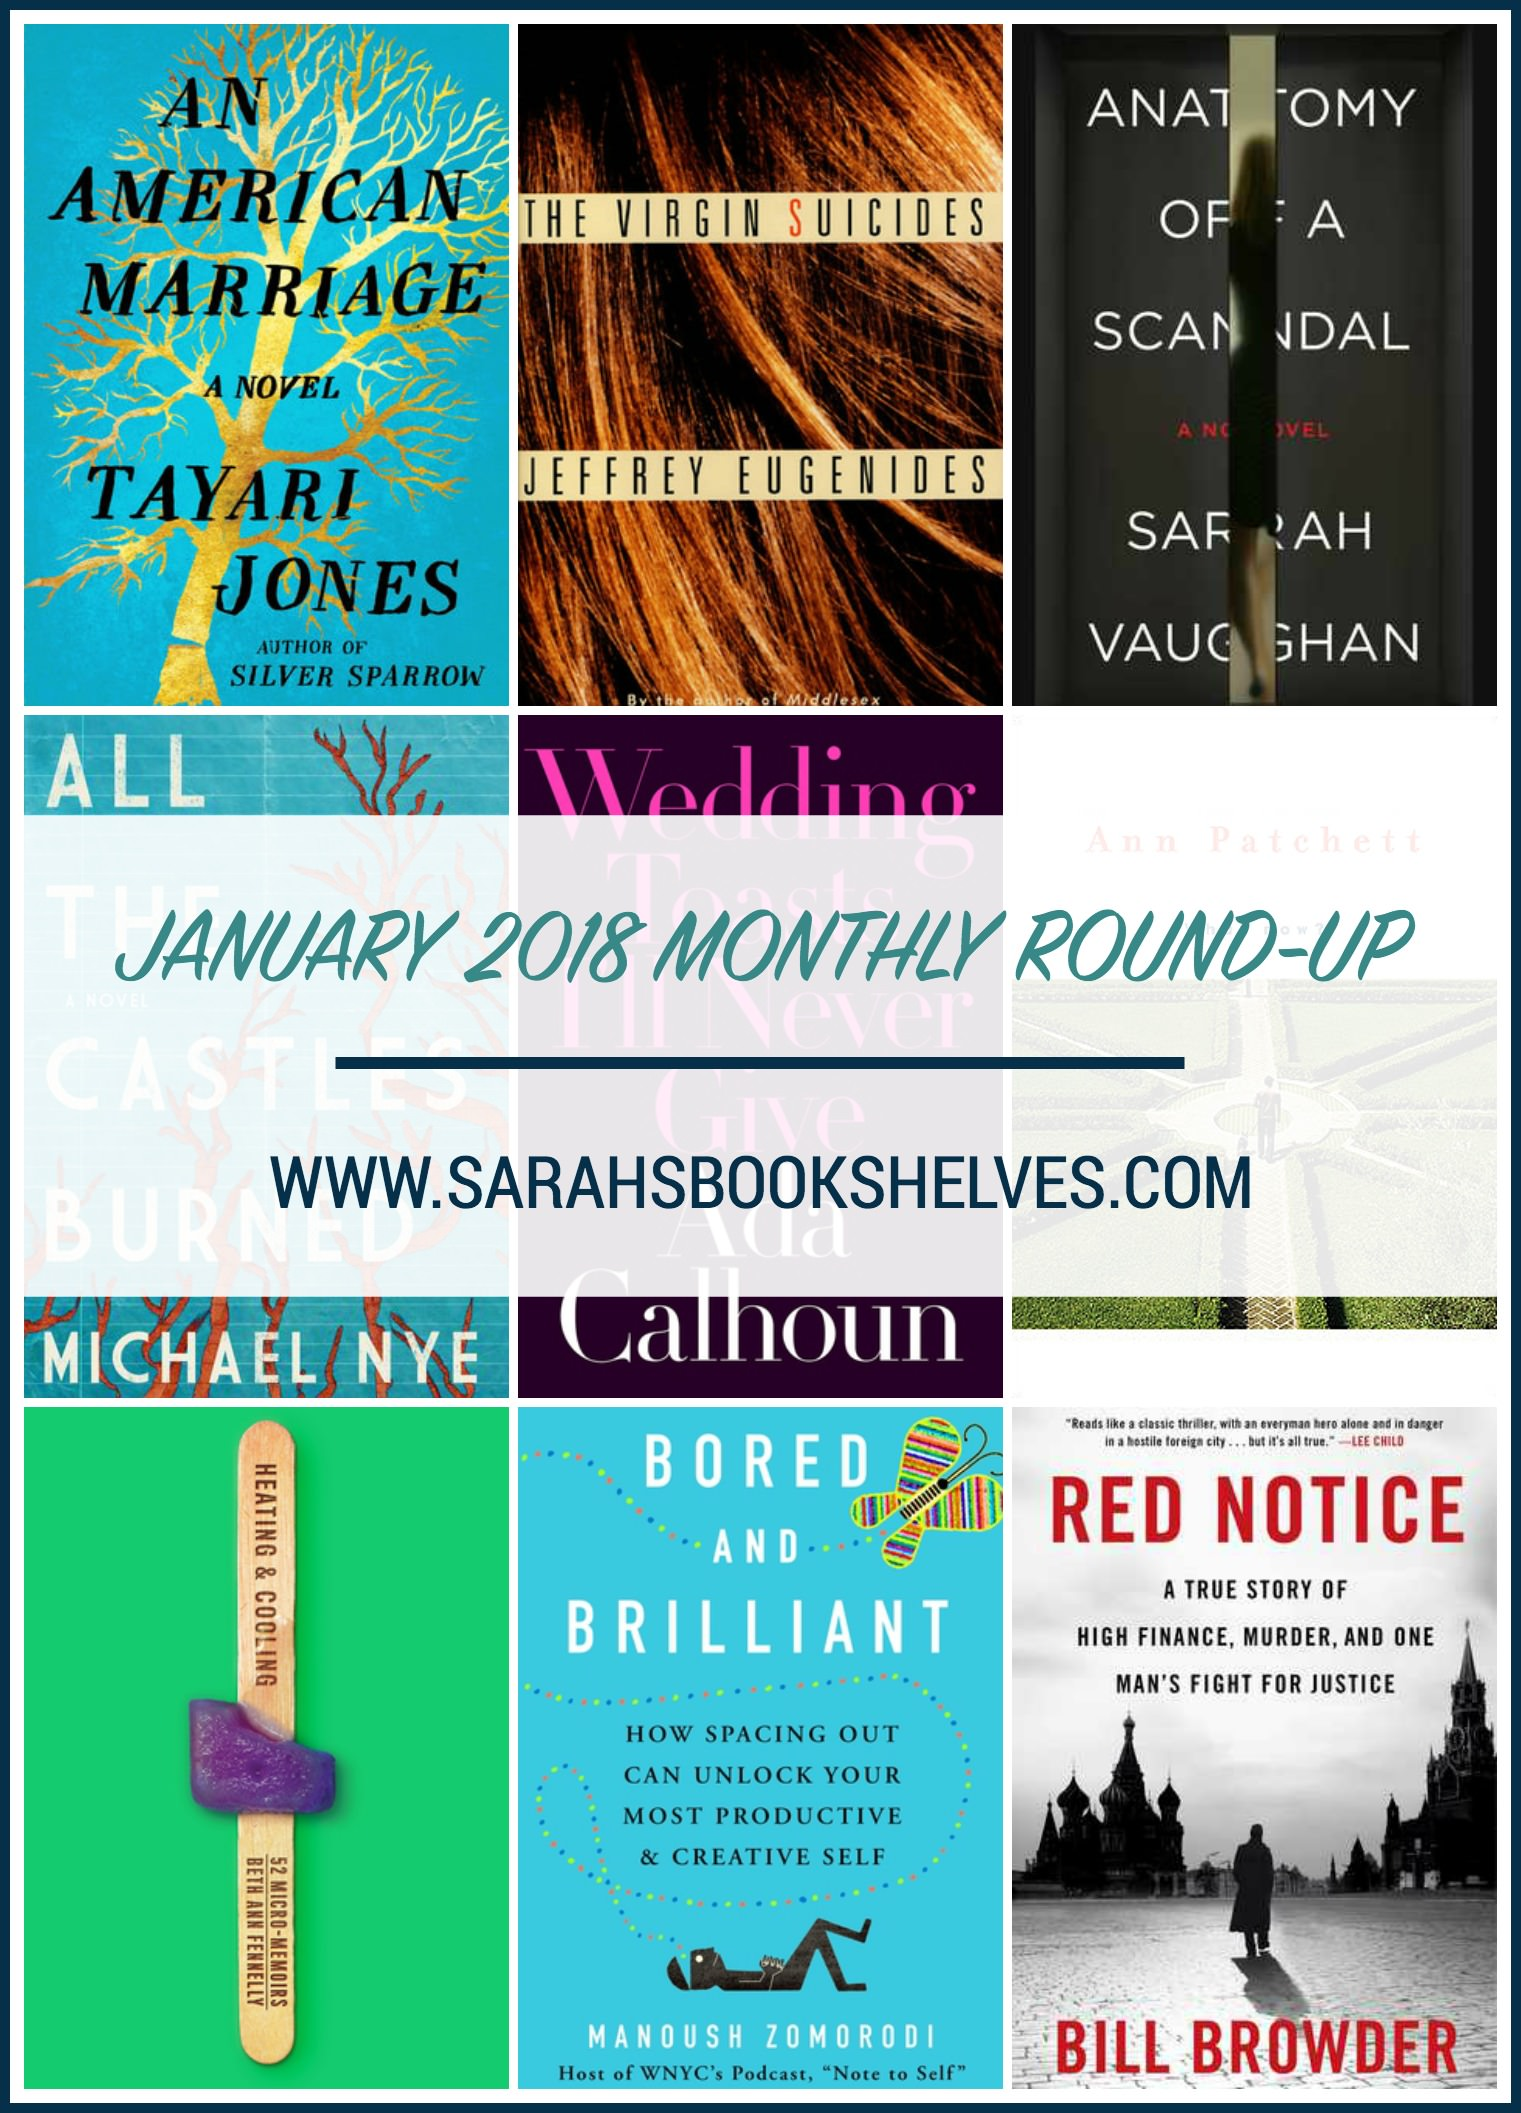 January 2018 Monthly Round-Up